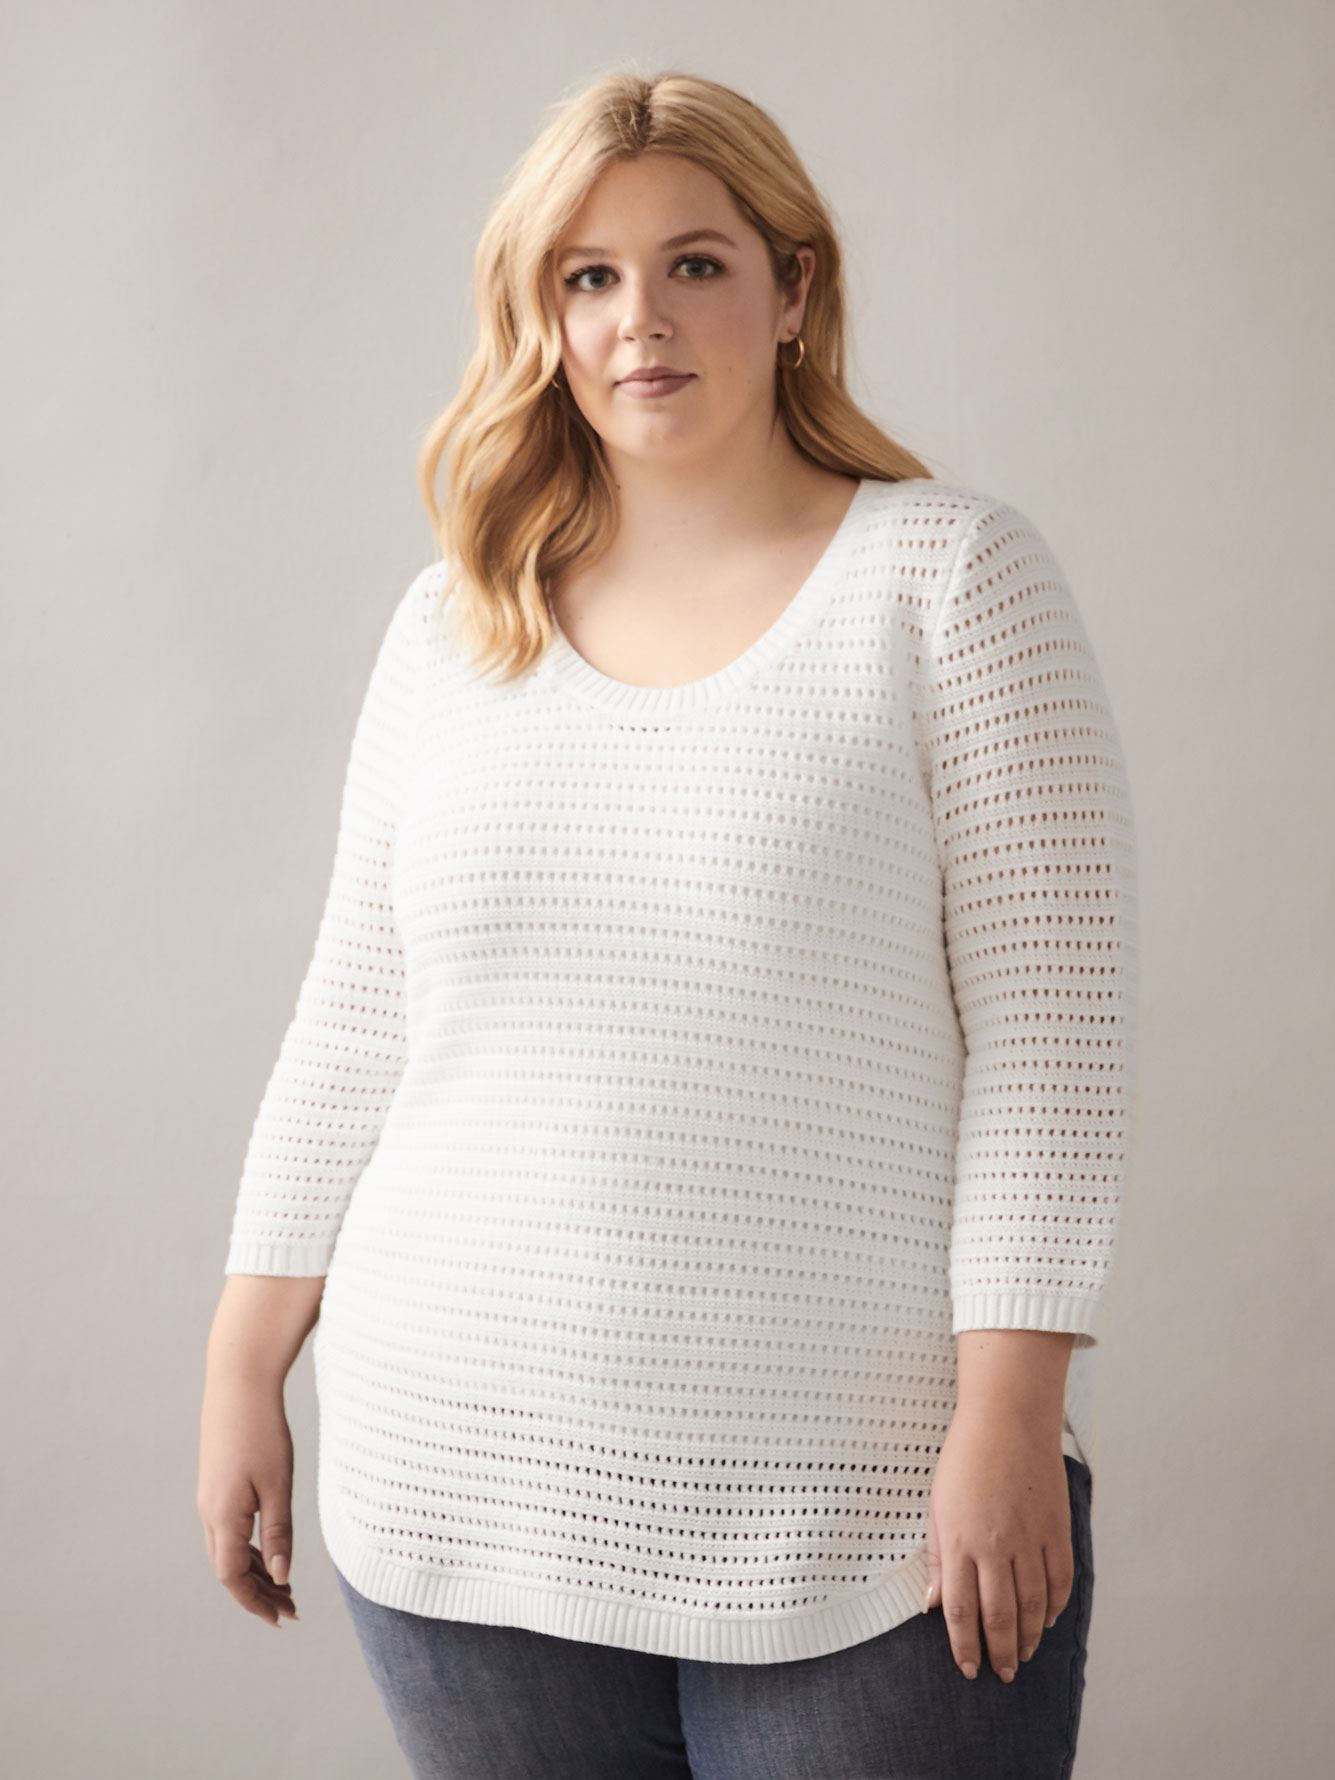 Open Stitch Scoop-Neck Sweater - In Every Story